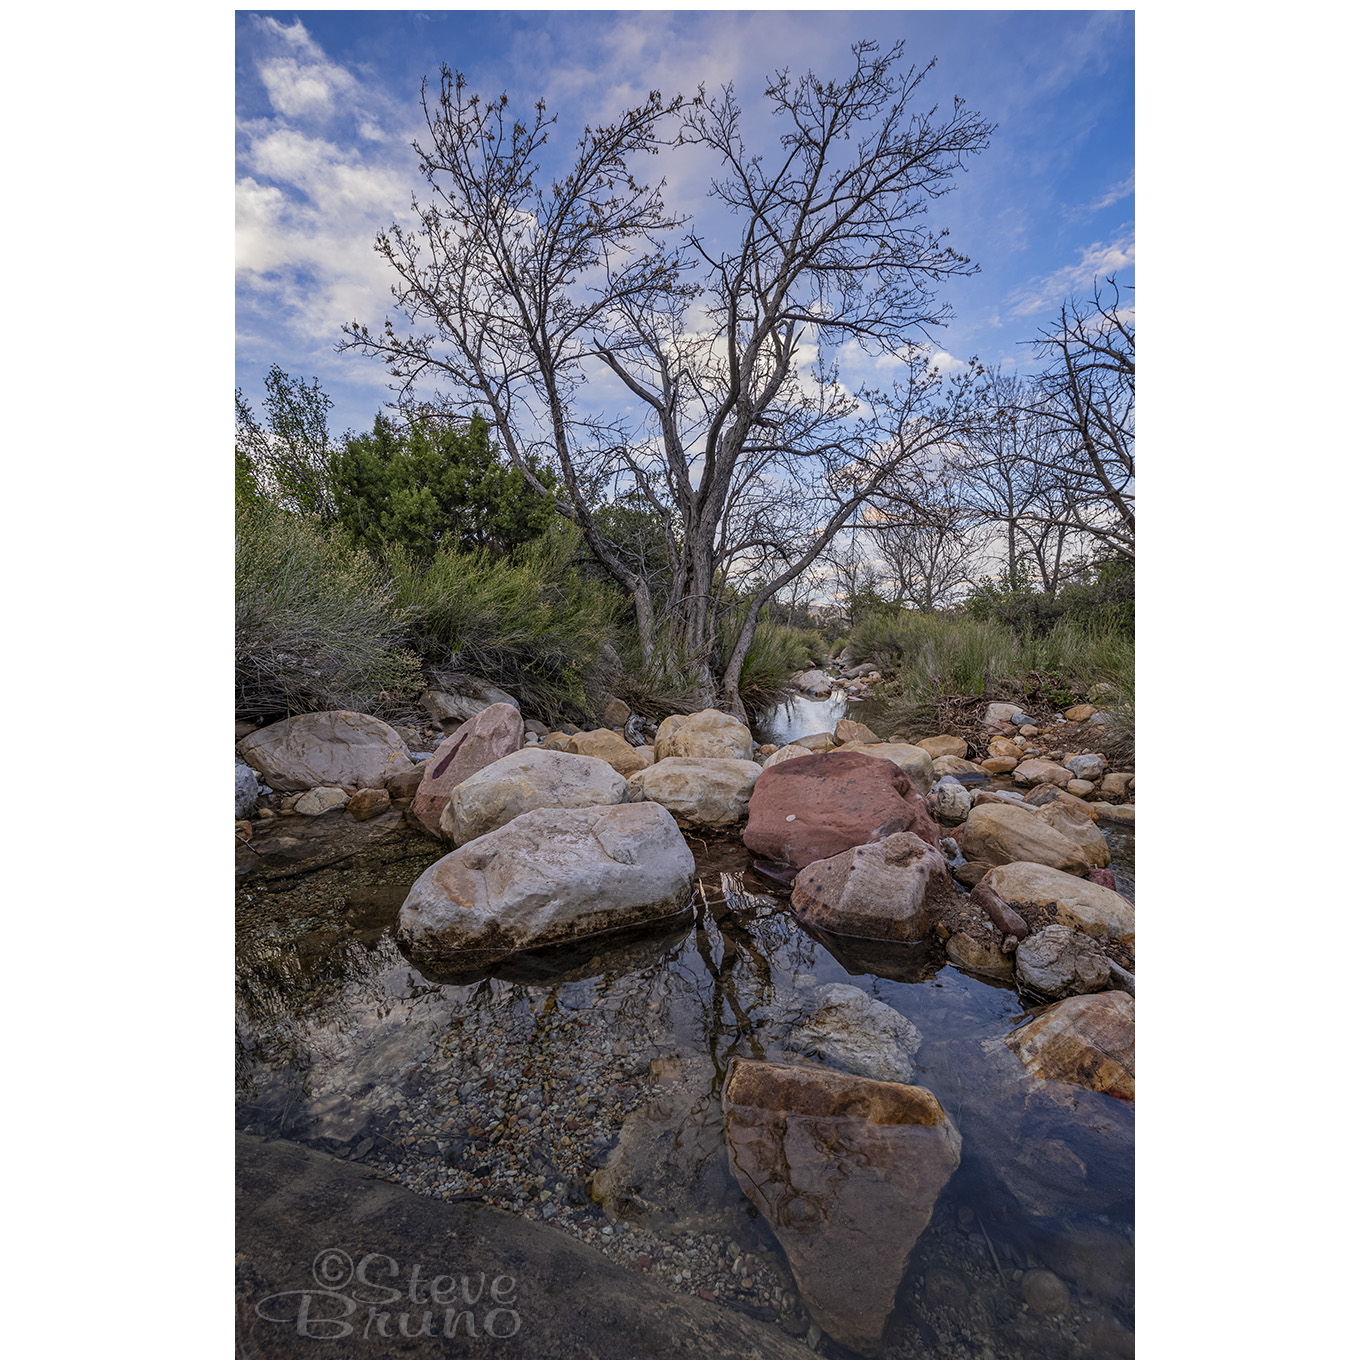 water, red rock canyon, nevada, las vegas, Steve Bruno